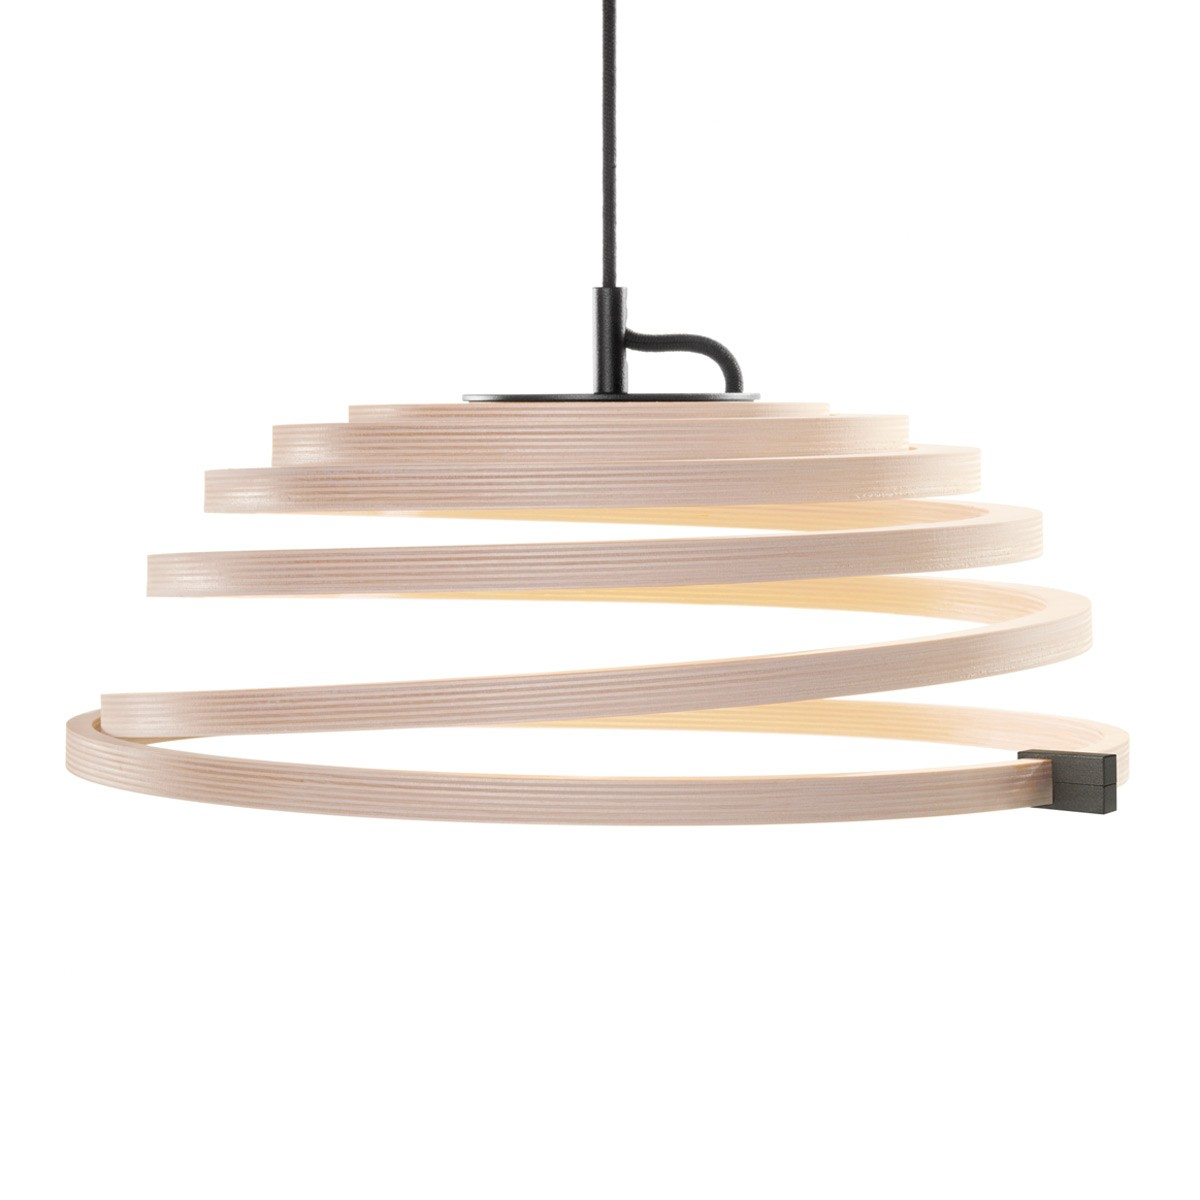 pendant aspiro 8000, design seppo koho for secto design